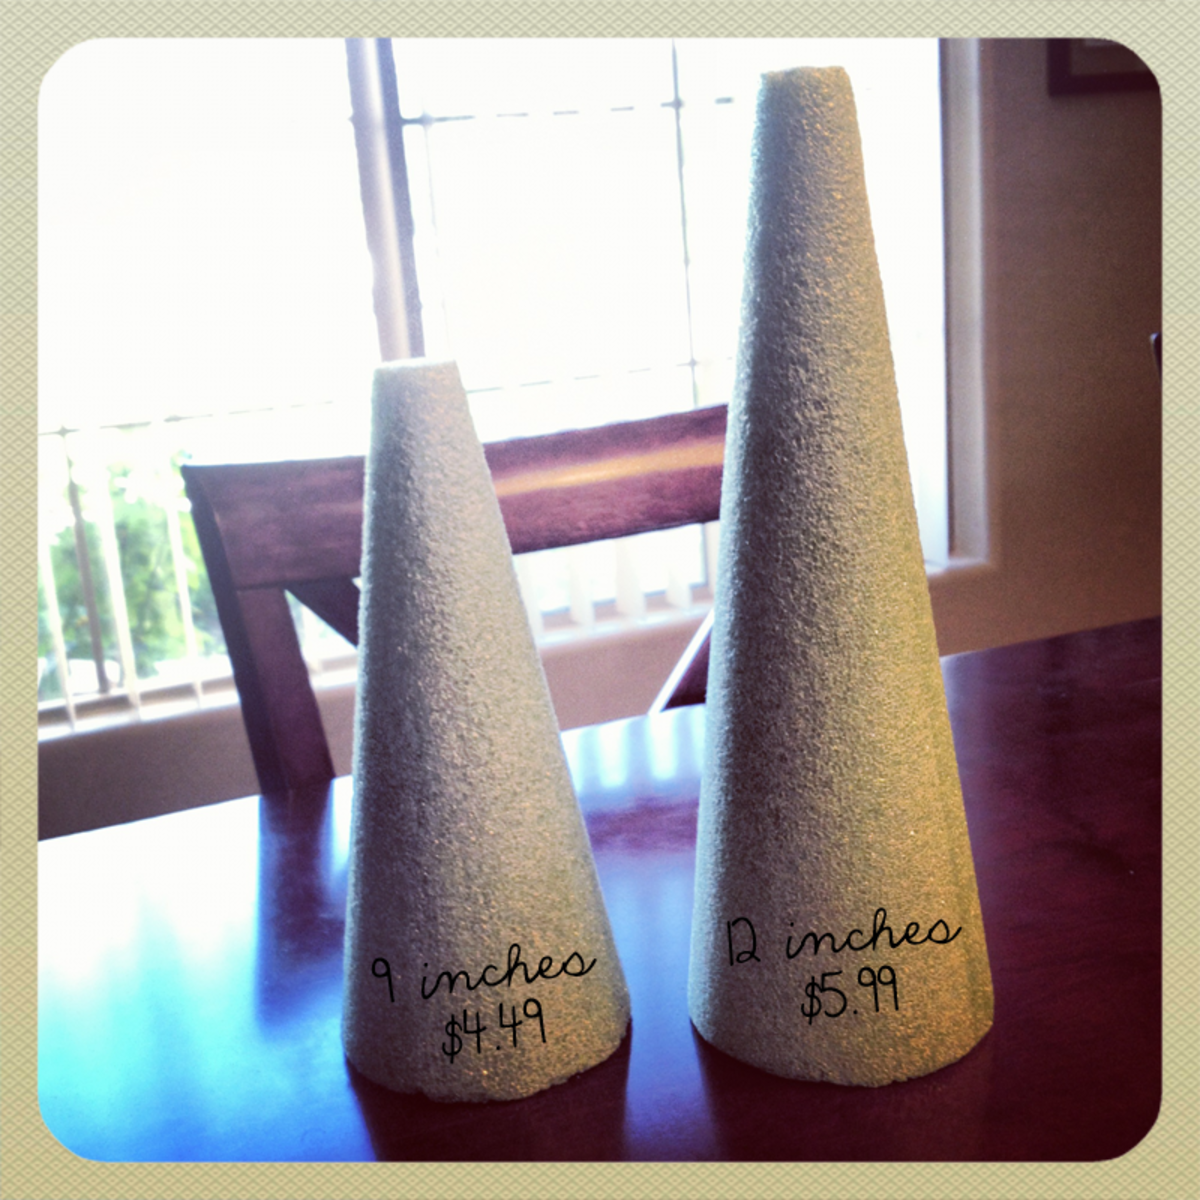 Green Styrofoam cones purchased at Michael's.